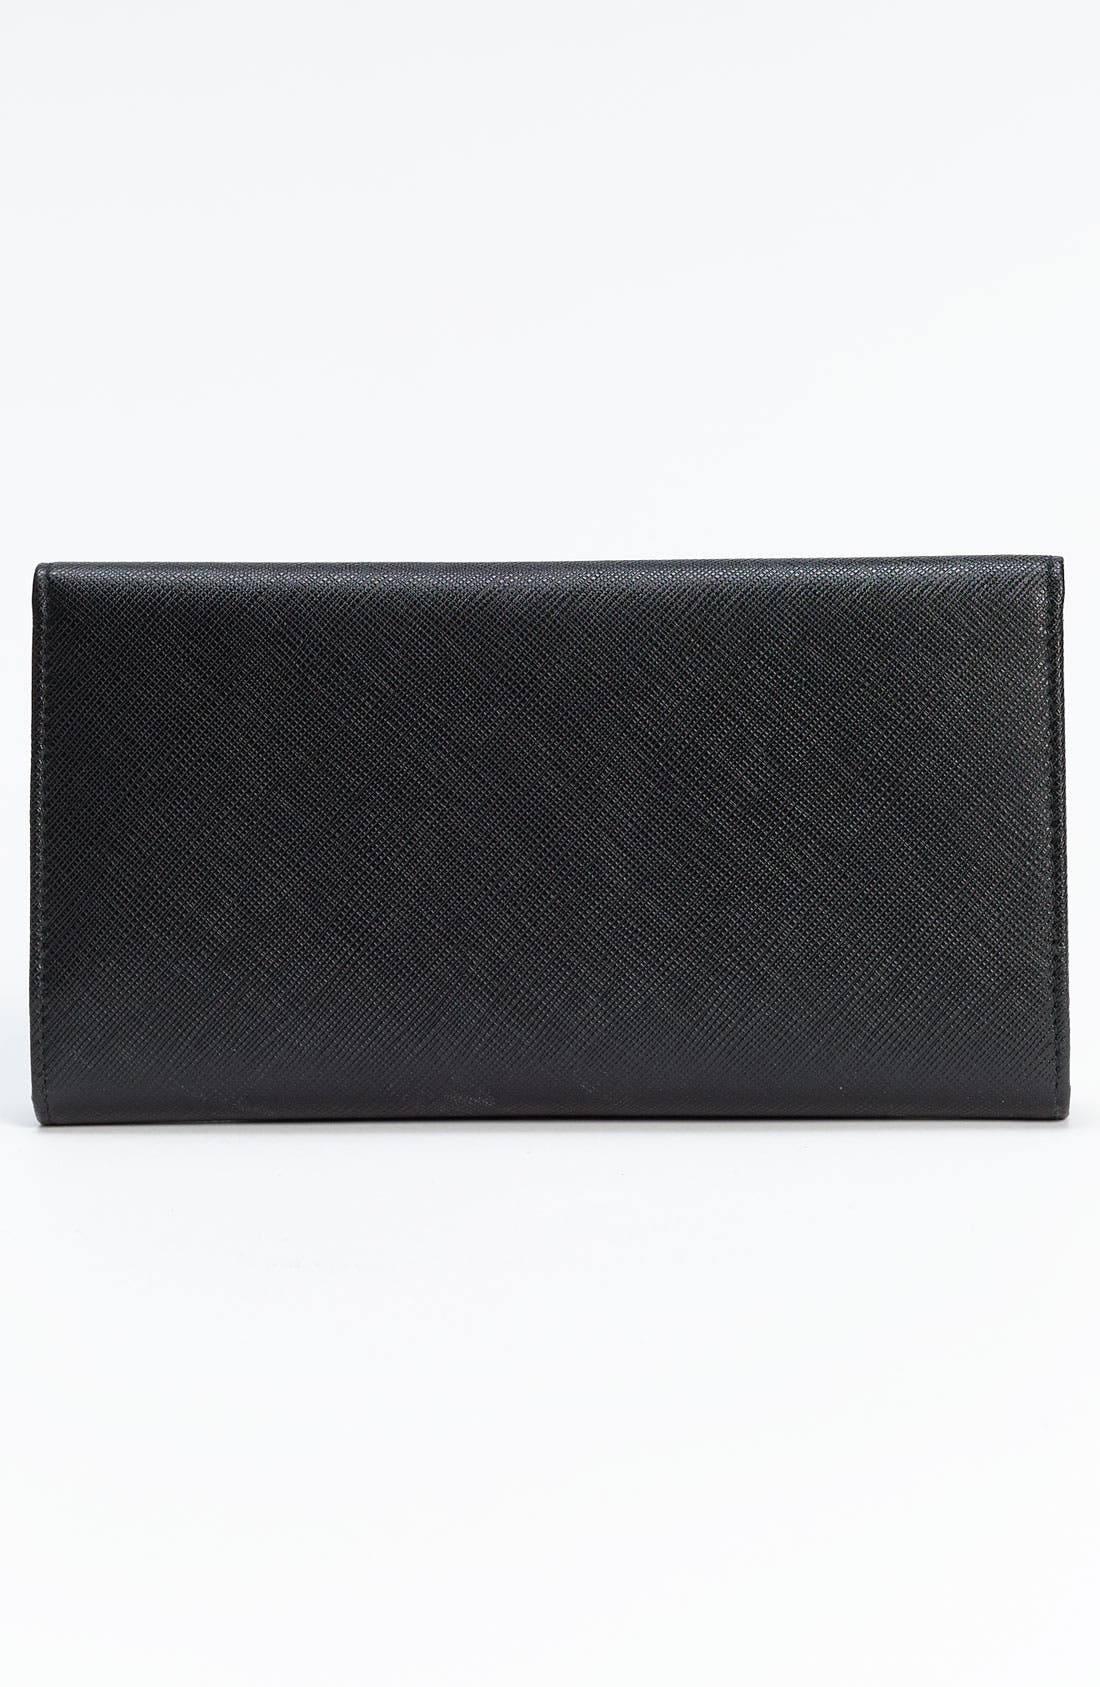 Alternate Image 3  - Salvatore Ferragamo 'Vara' Continental Wallet